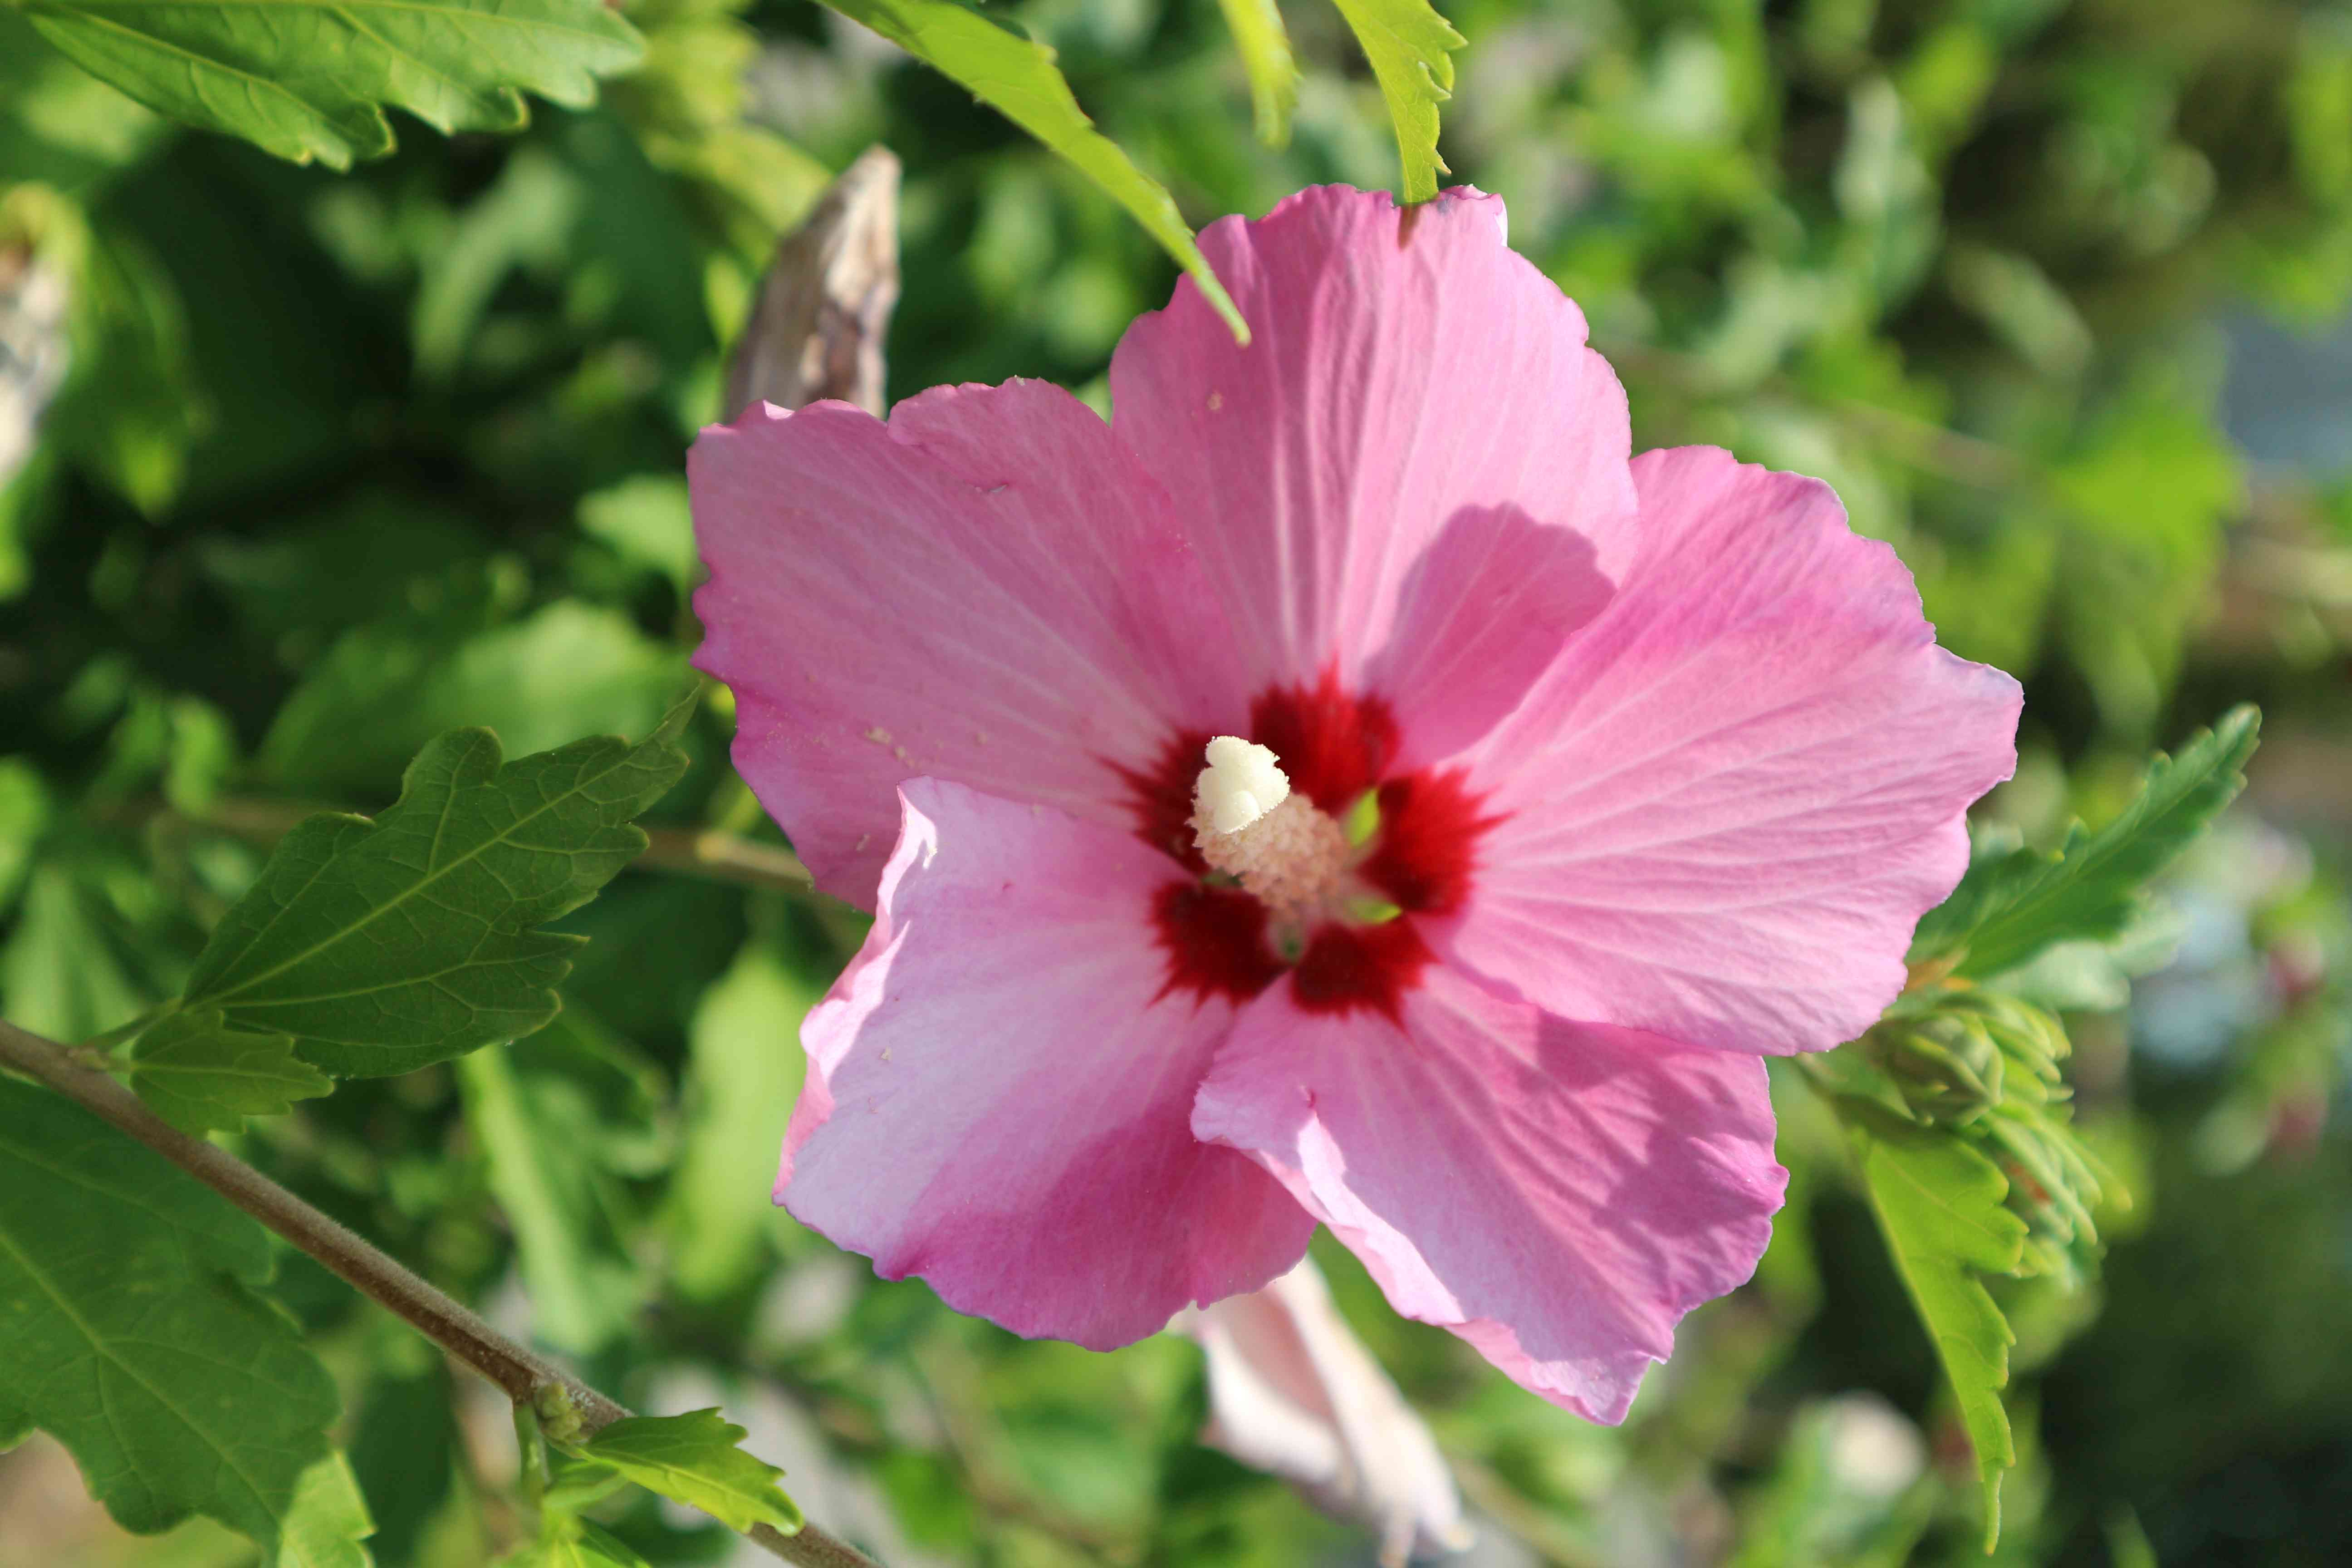 Syrian ketmia pink with red center rose of Sharon 'Hamabo' flower on a sunny day.